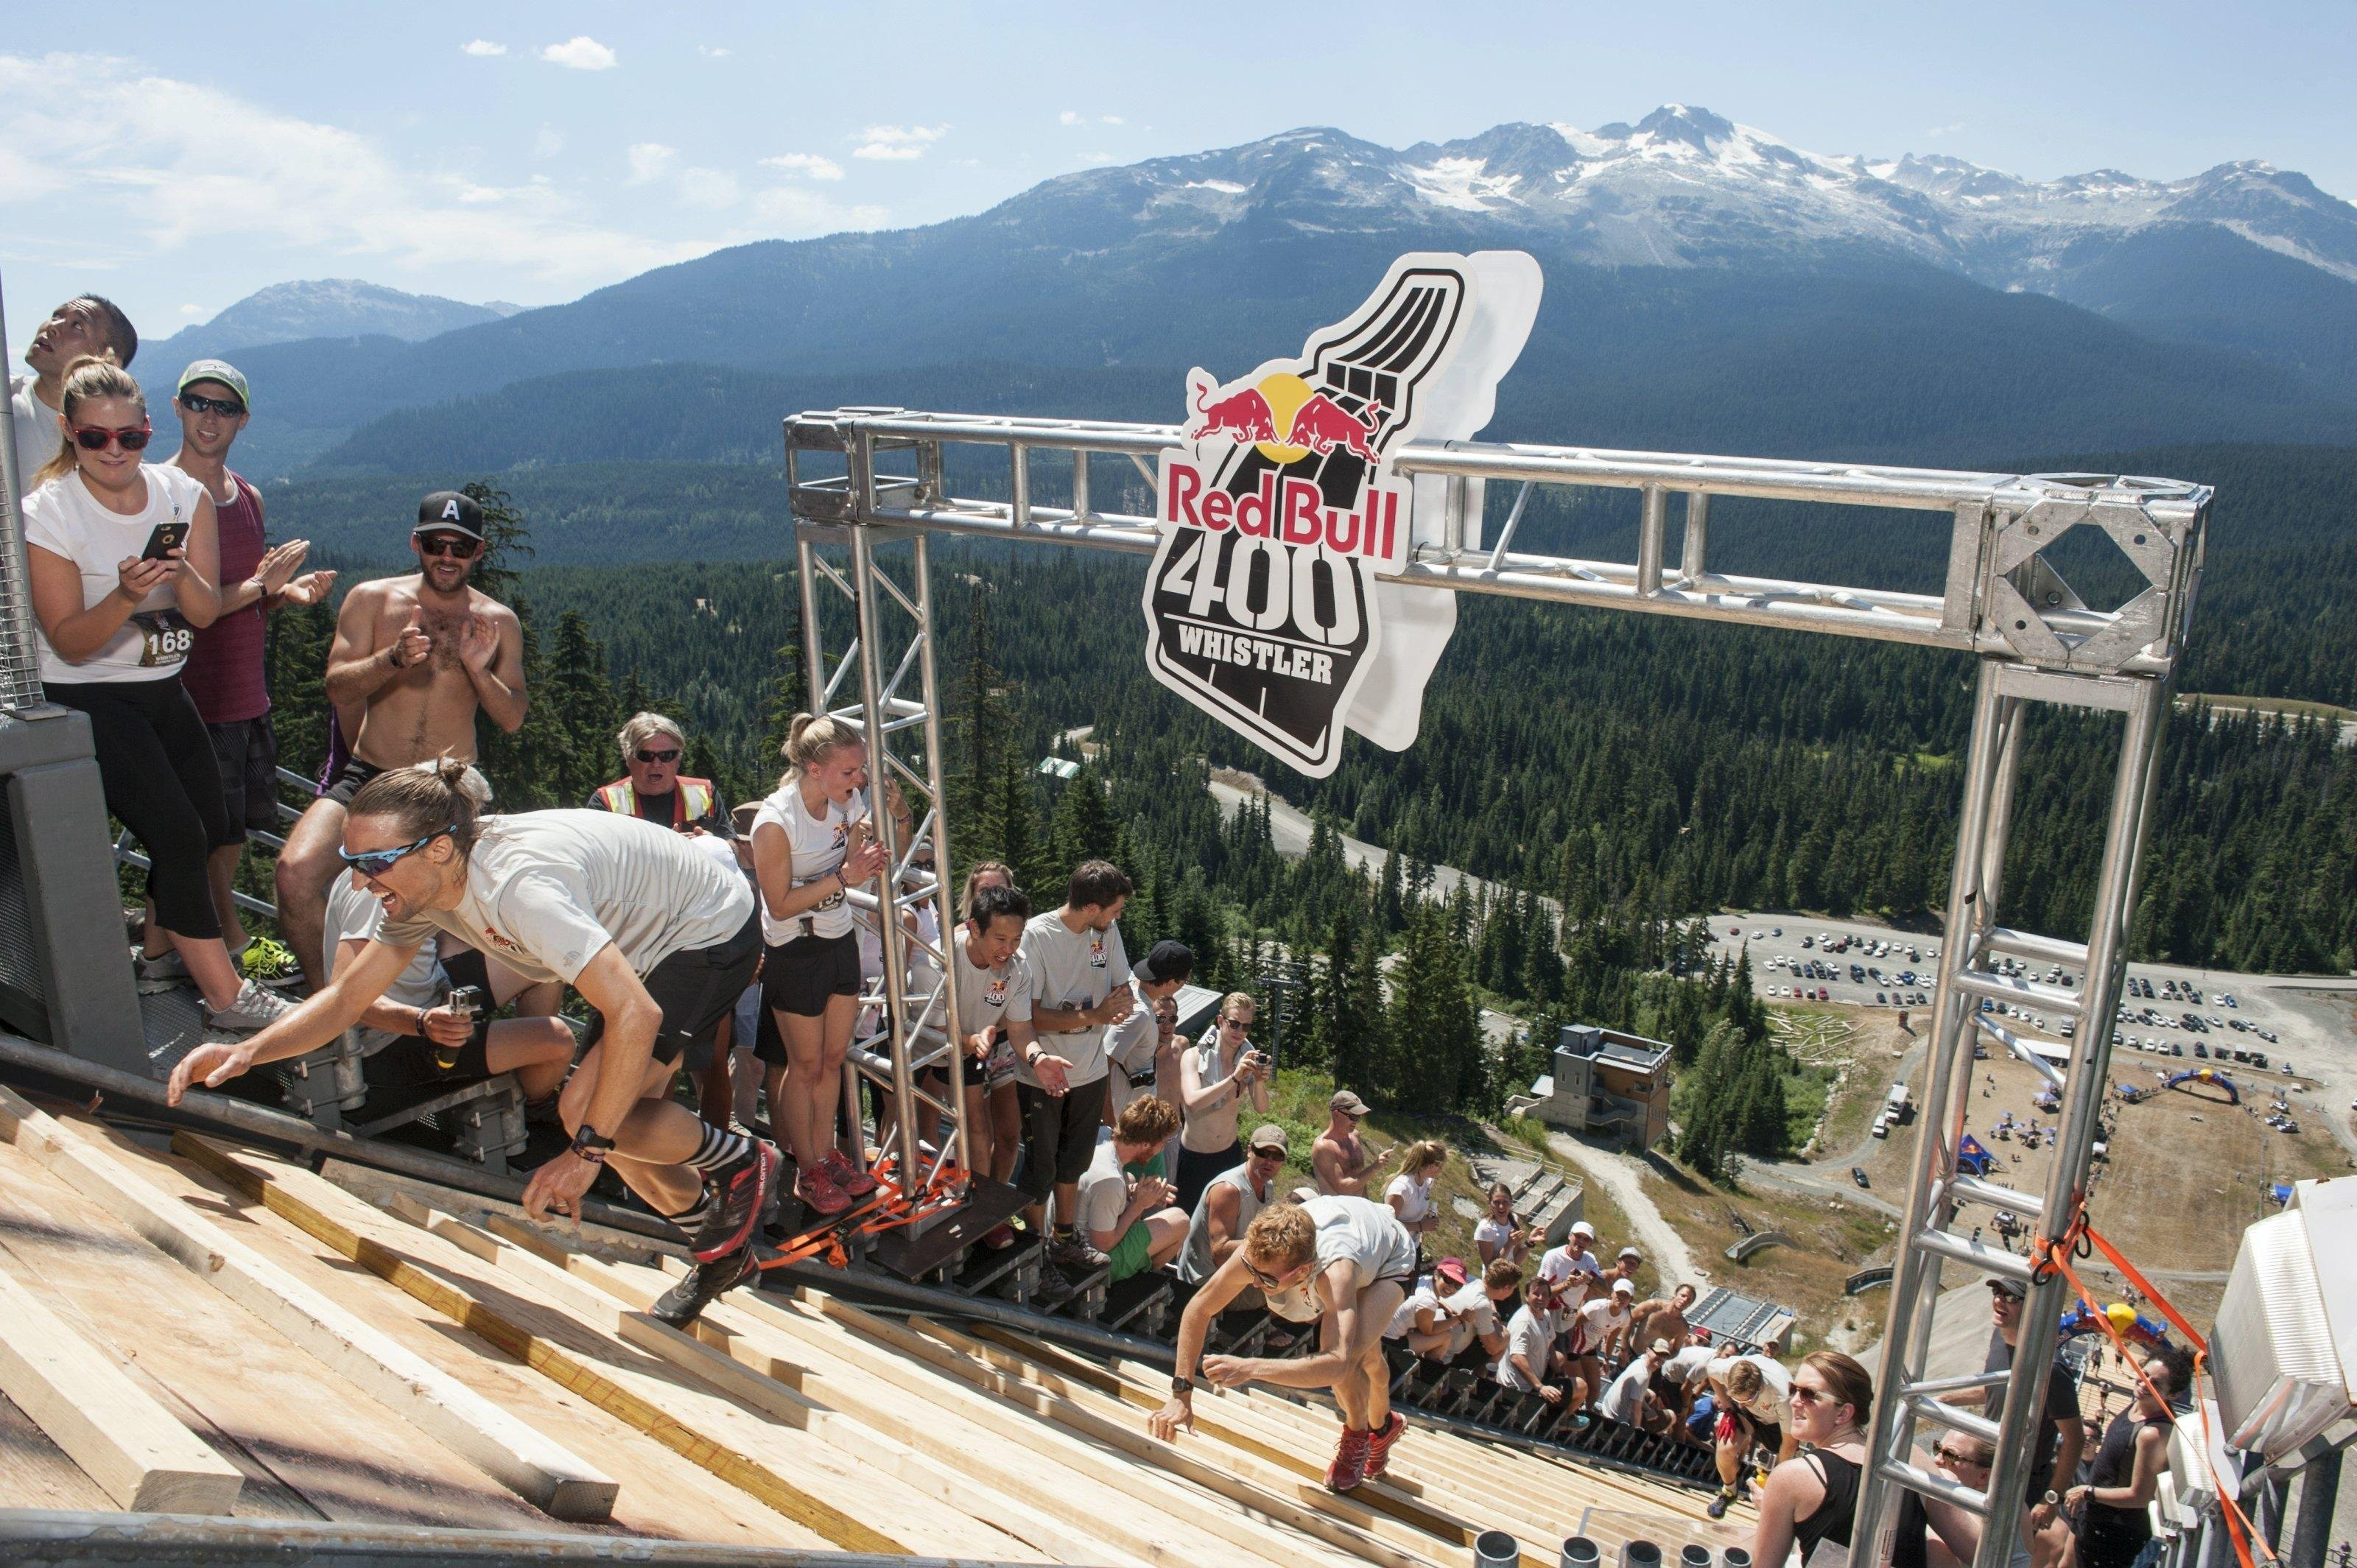 brandon-crichton-red-bull-400-whistler